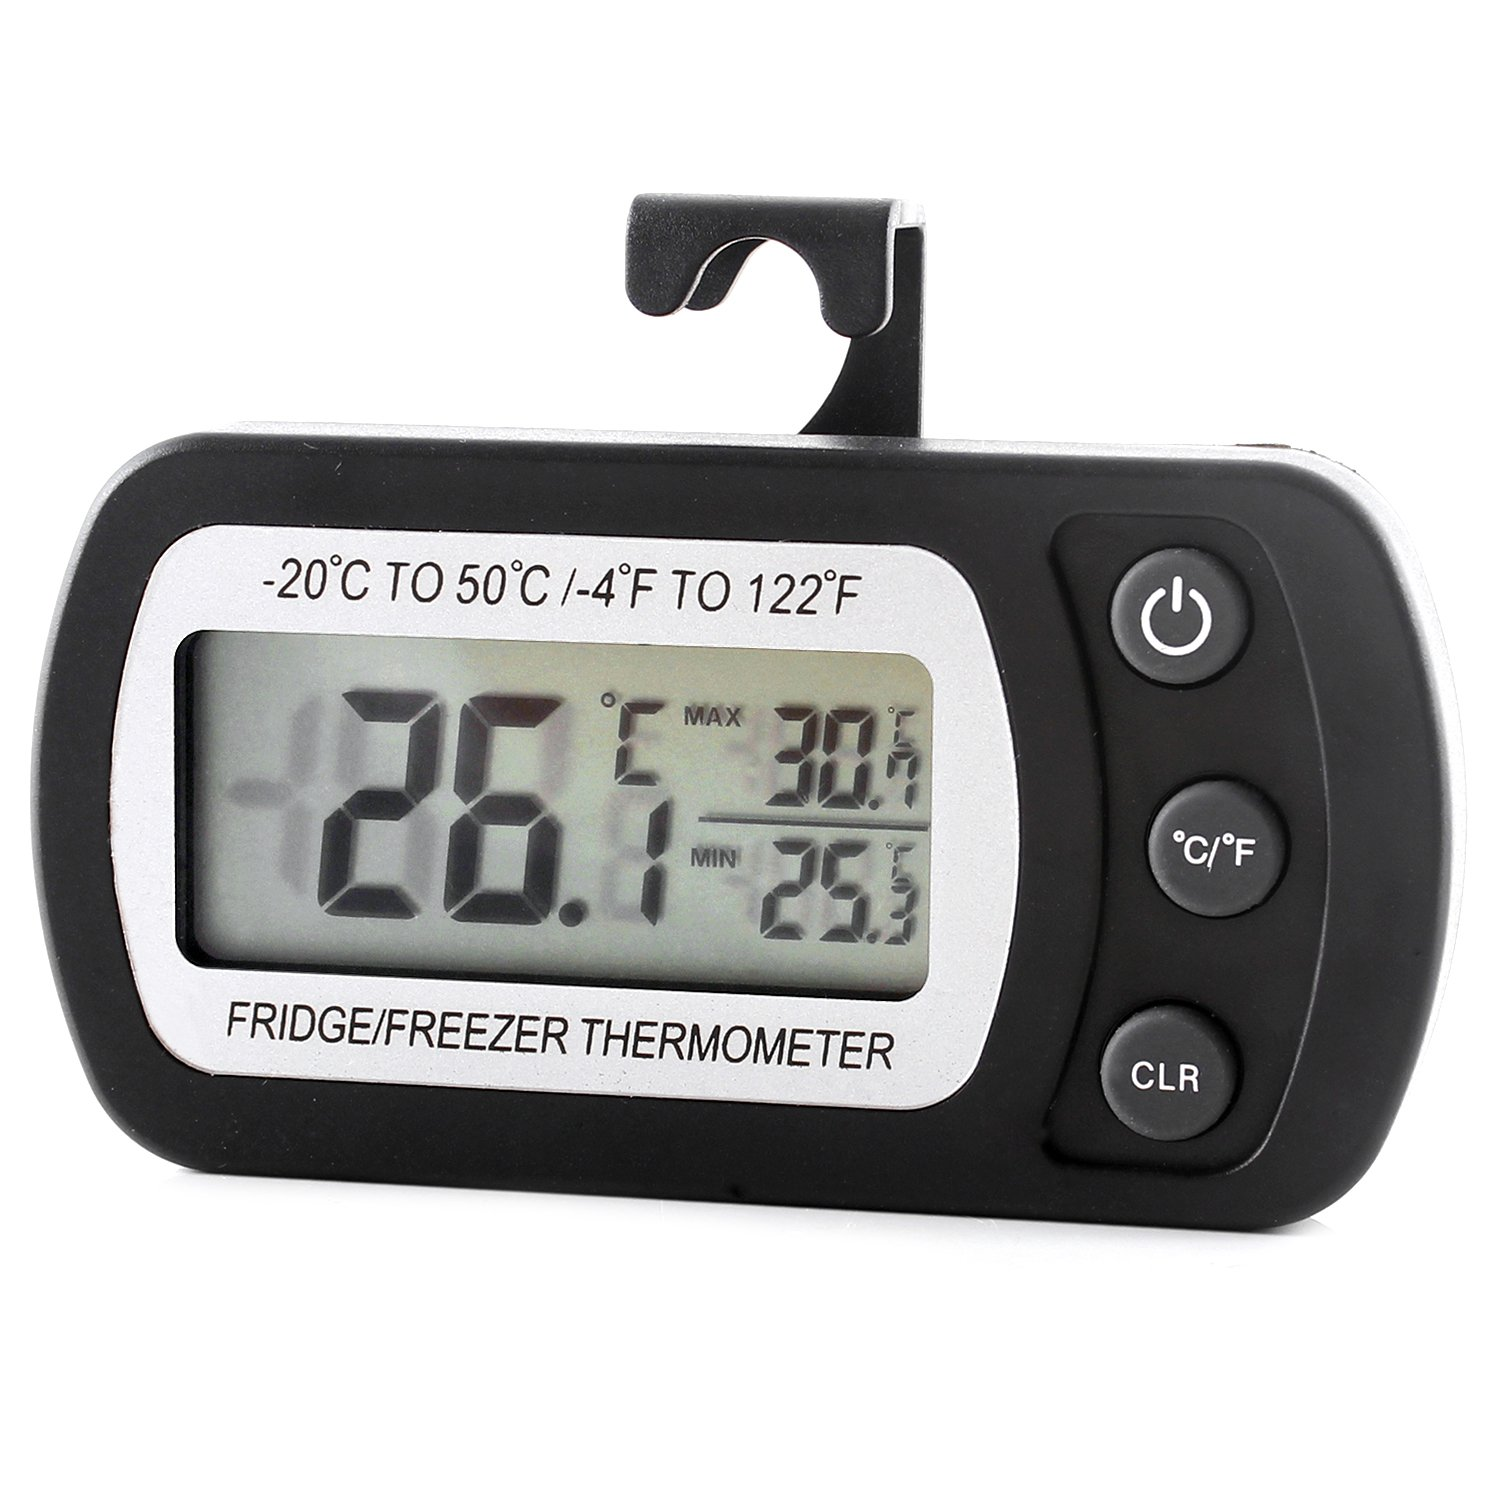 Refrigerator Fridge Thermometer Digital Freezer Room Thermometer Waterproof, Max/Min Record Function with Large LCD Display (black)